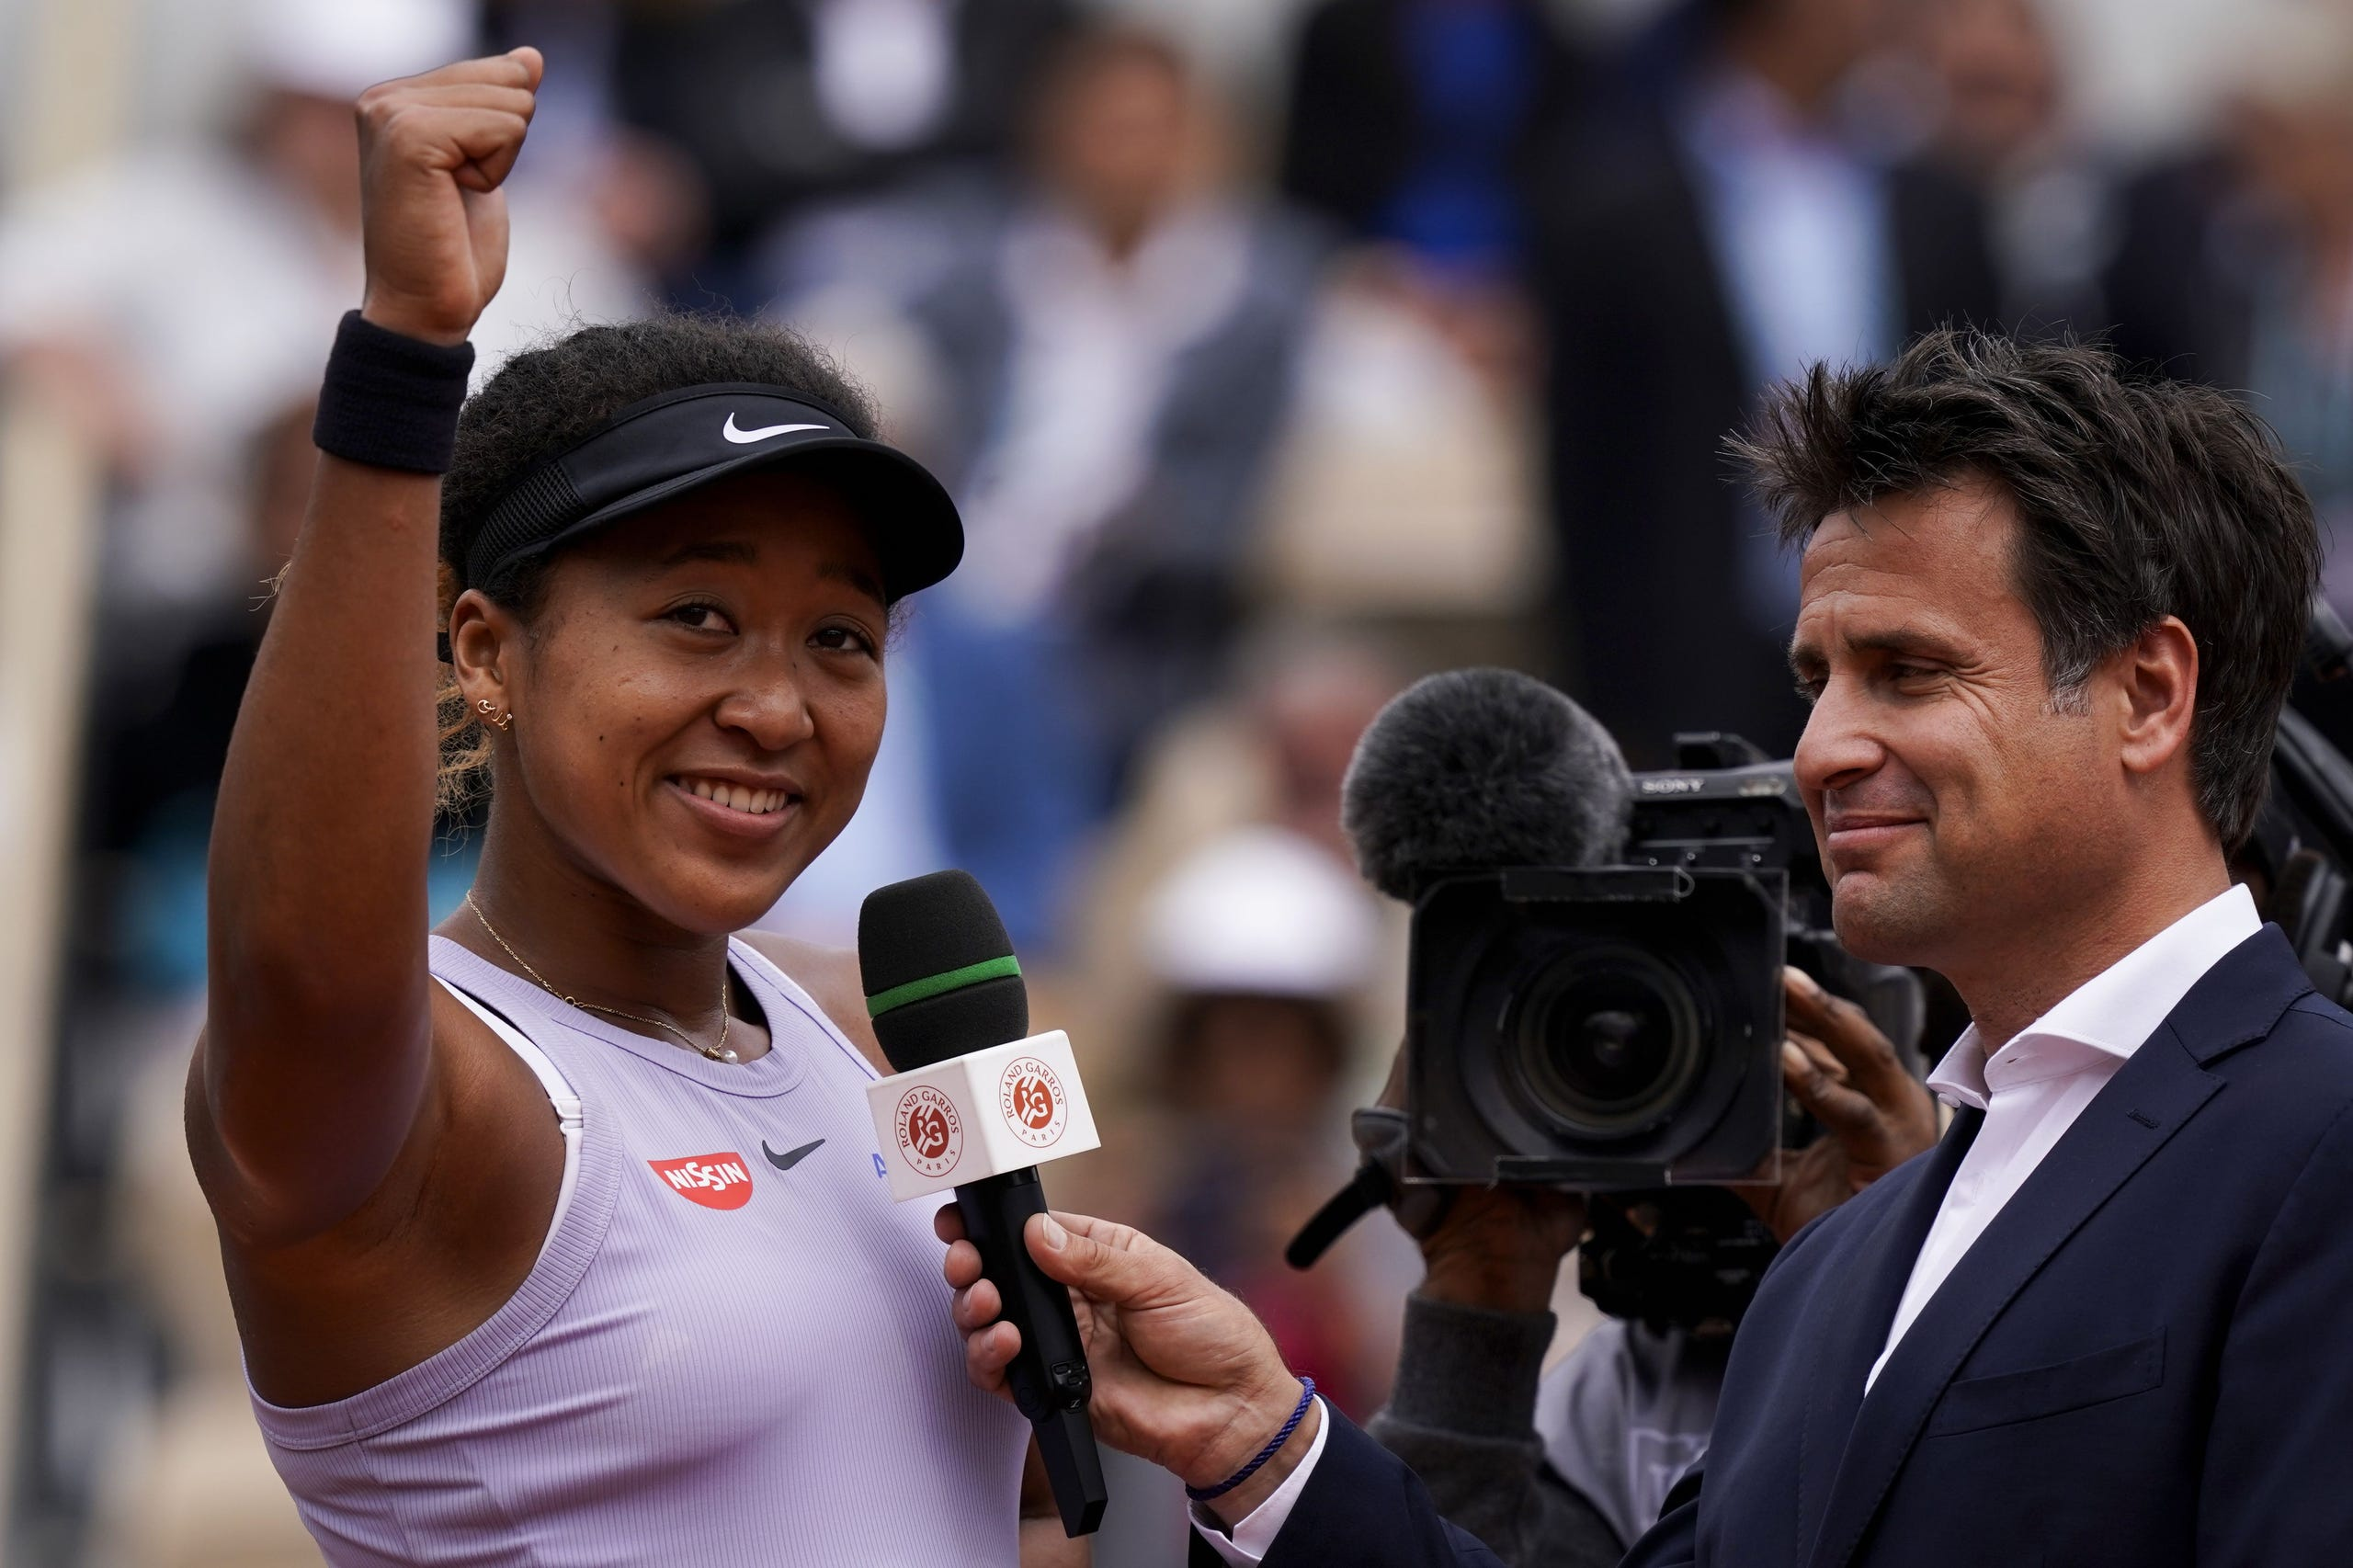 Naomi Osaka celebrates as she speaks with French former tennis player Fabrice Santoro, after winning against Belarus' Victoria Azarenka during their women's singles second round match on day five of The Roland Garros 2019 French Open tennis tournament in Paris on May 30, 2019.